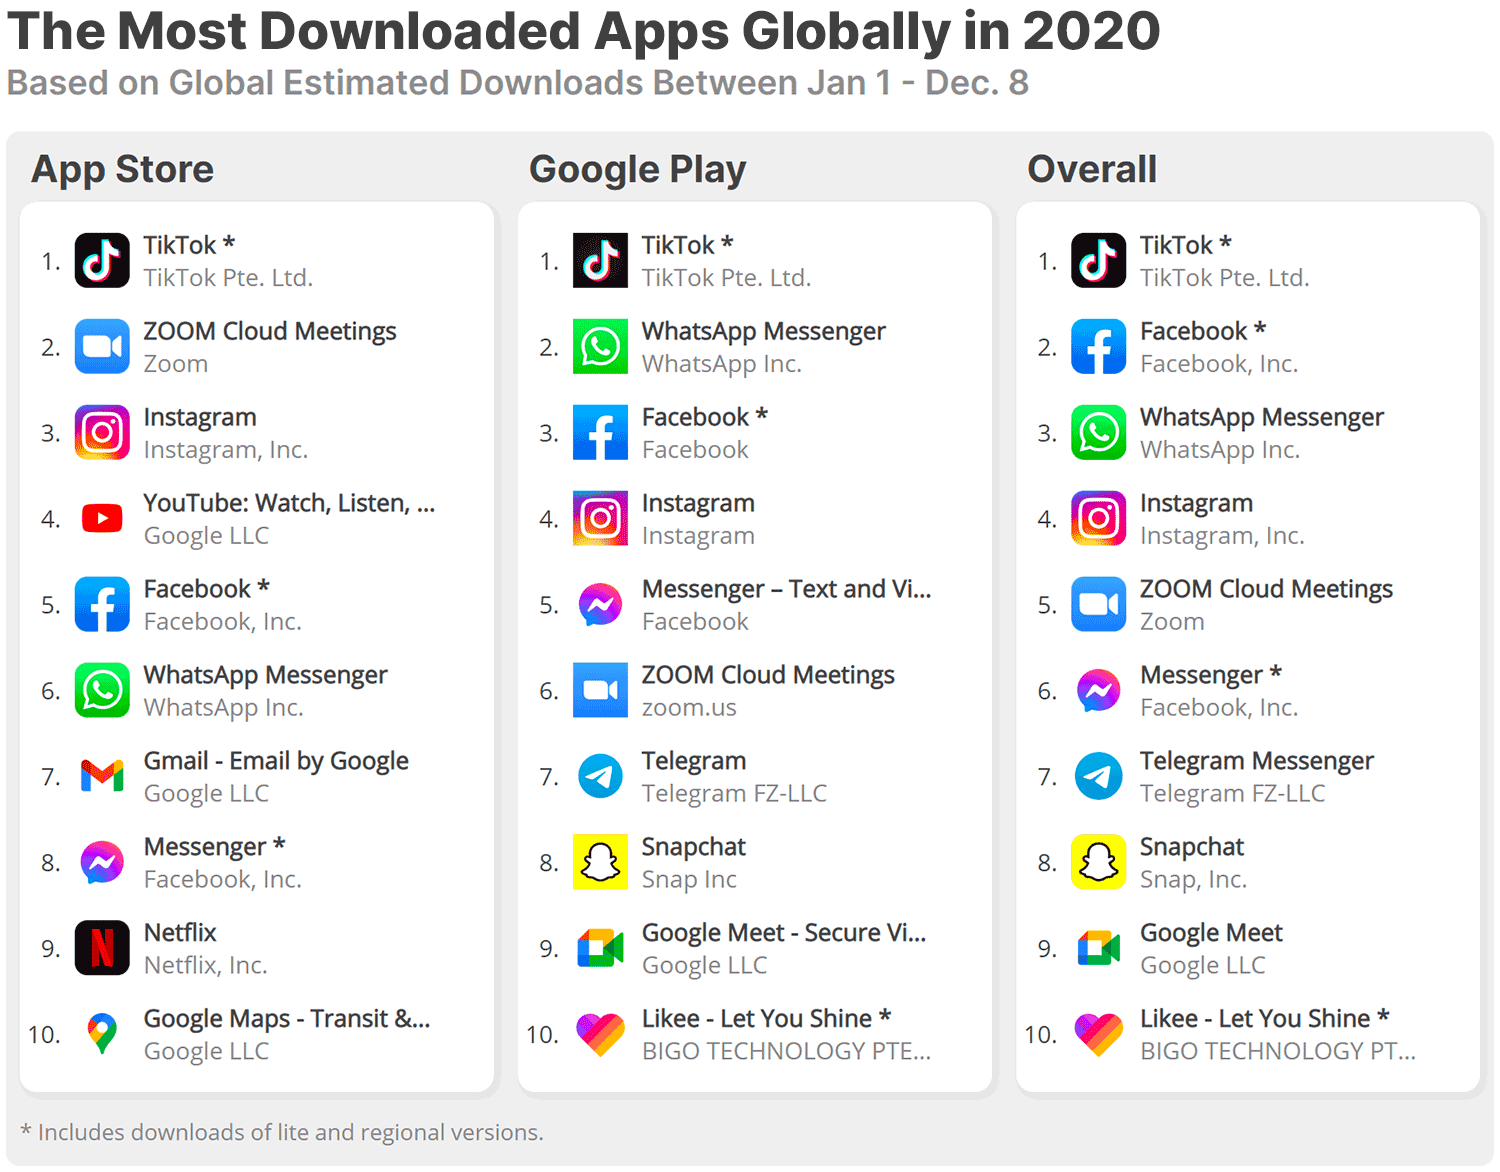 The top apps in 2020 by number of downloads worldwide